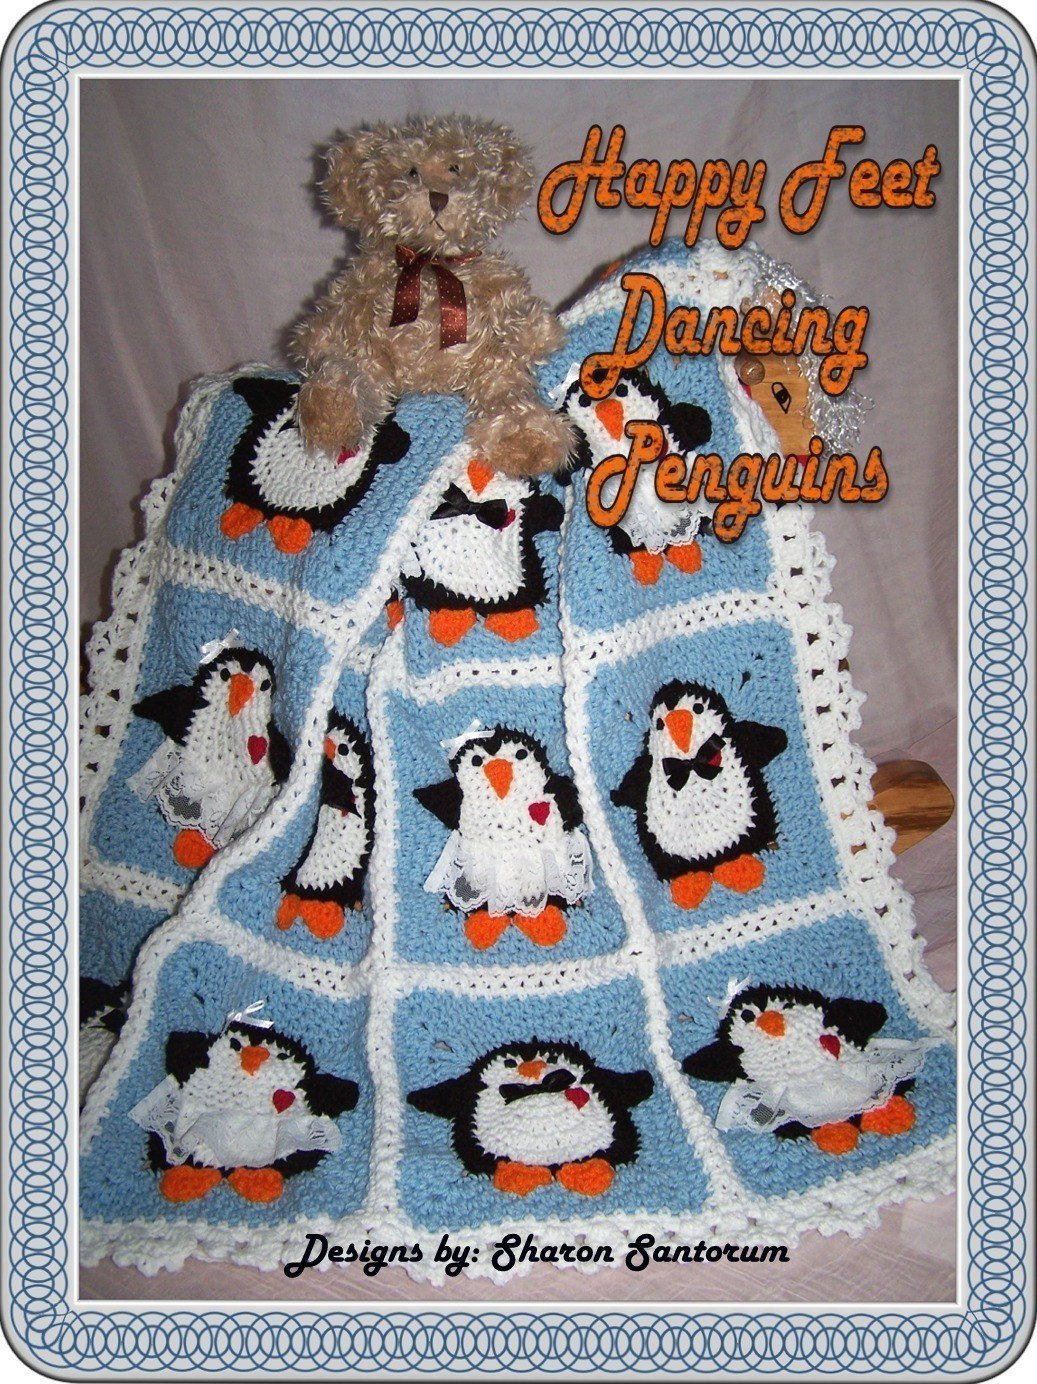 Baby Boy Crochet Blanket Patterns Beautiful Dancing Penguins Crochet Baby Afghan or Blanket Pattern Pdf Of Baby Boy Crochet Blanket Patterns New Free Baby Blanket Crochet Patterns Easy